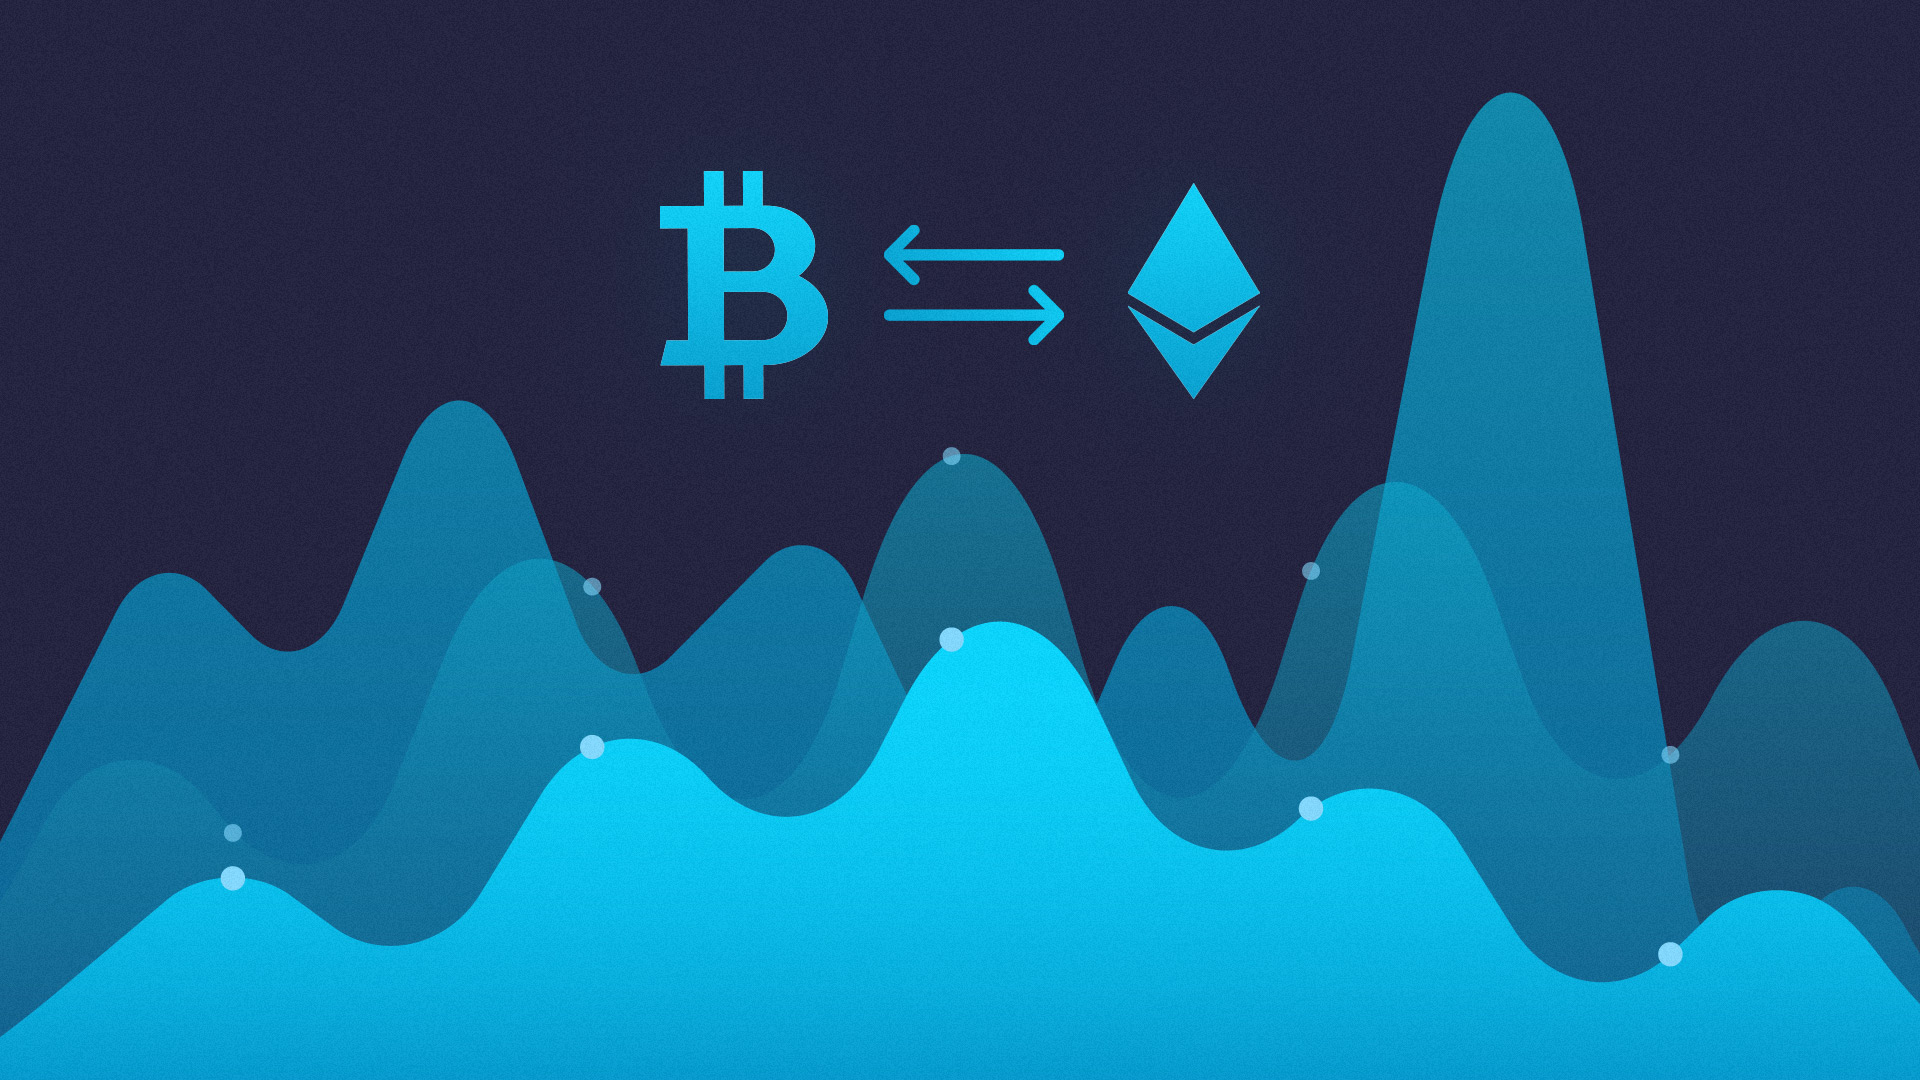 Ether options trading volume surpassed that of bitcoin's for the first time on Deribit